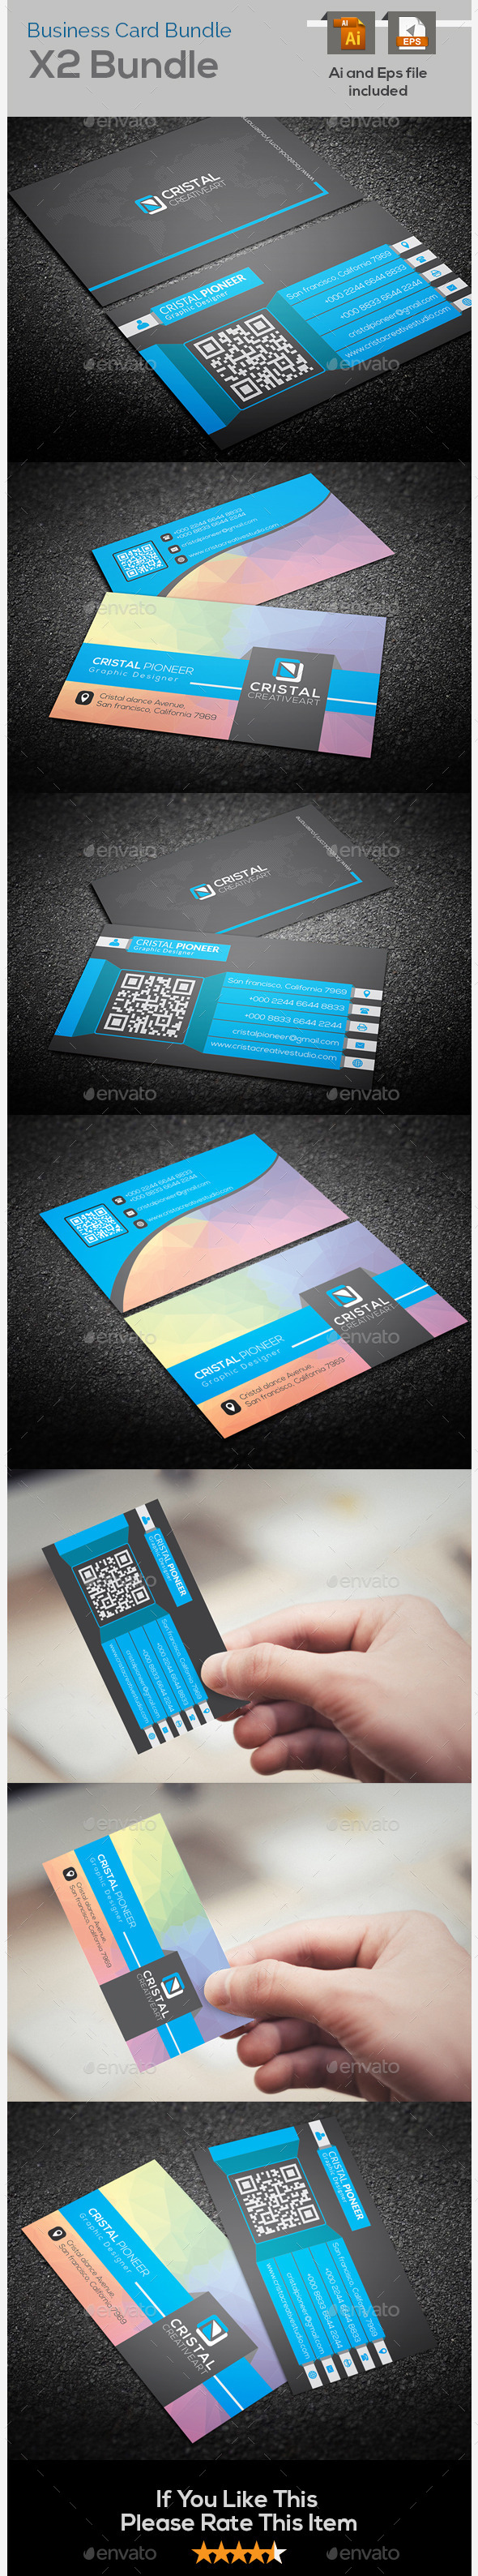 Colorful & Creative Business Card Bundle X2 - Creative Business Cards